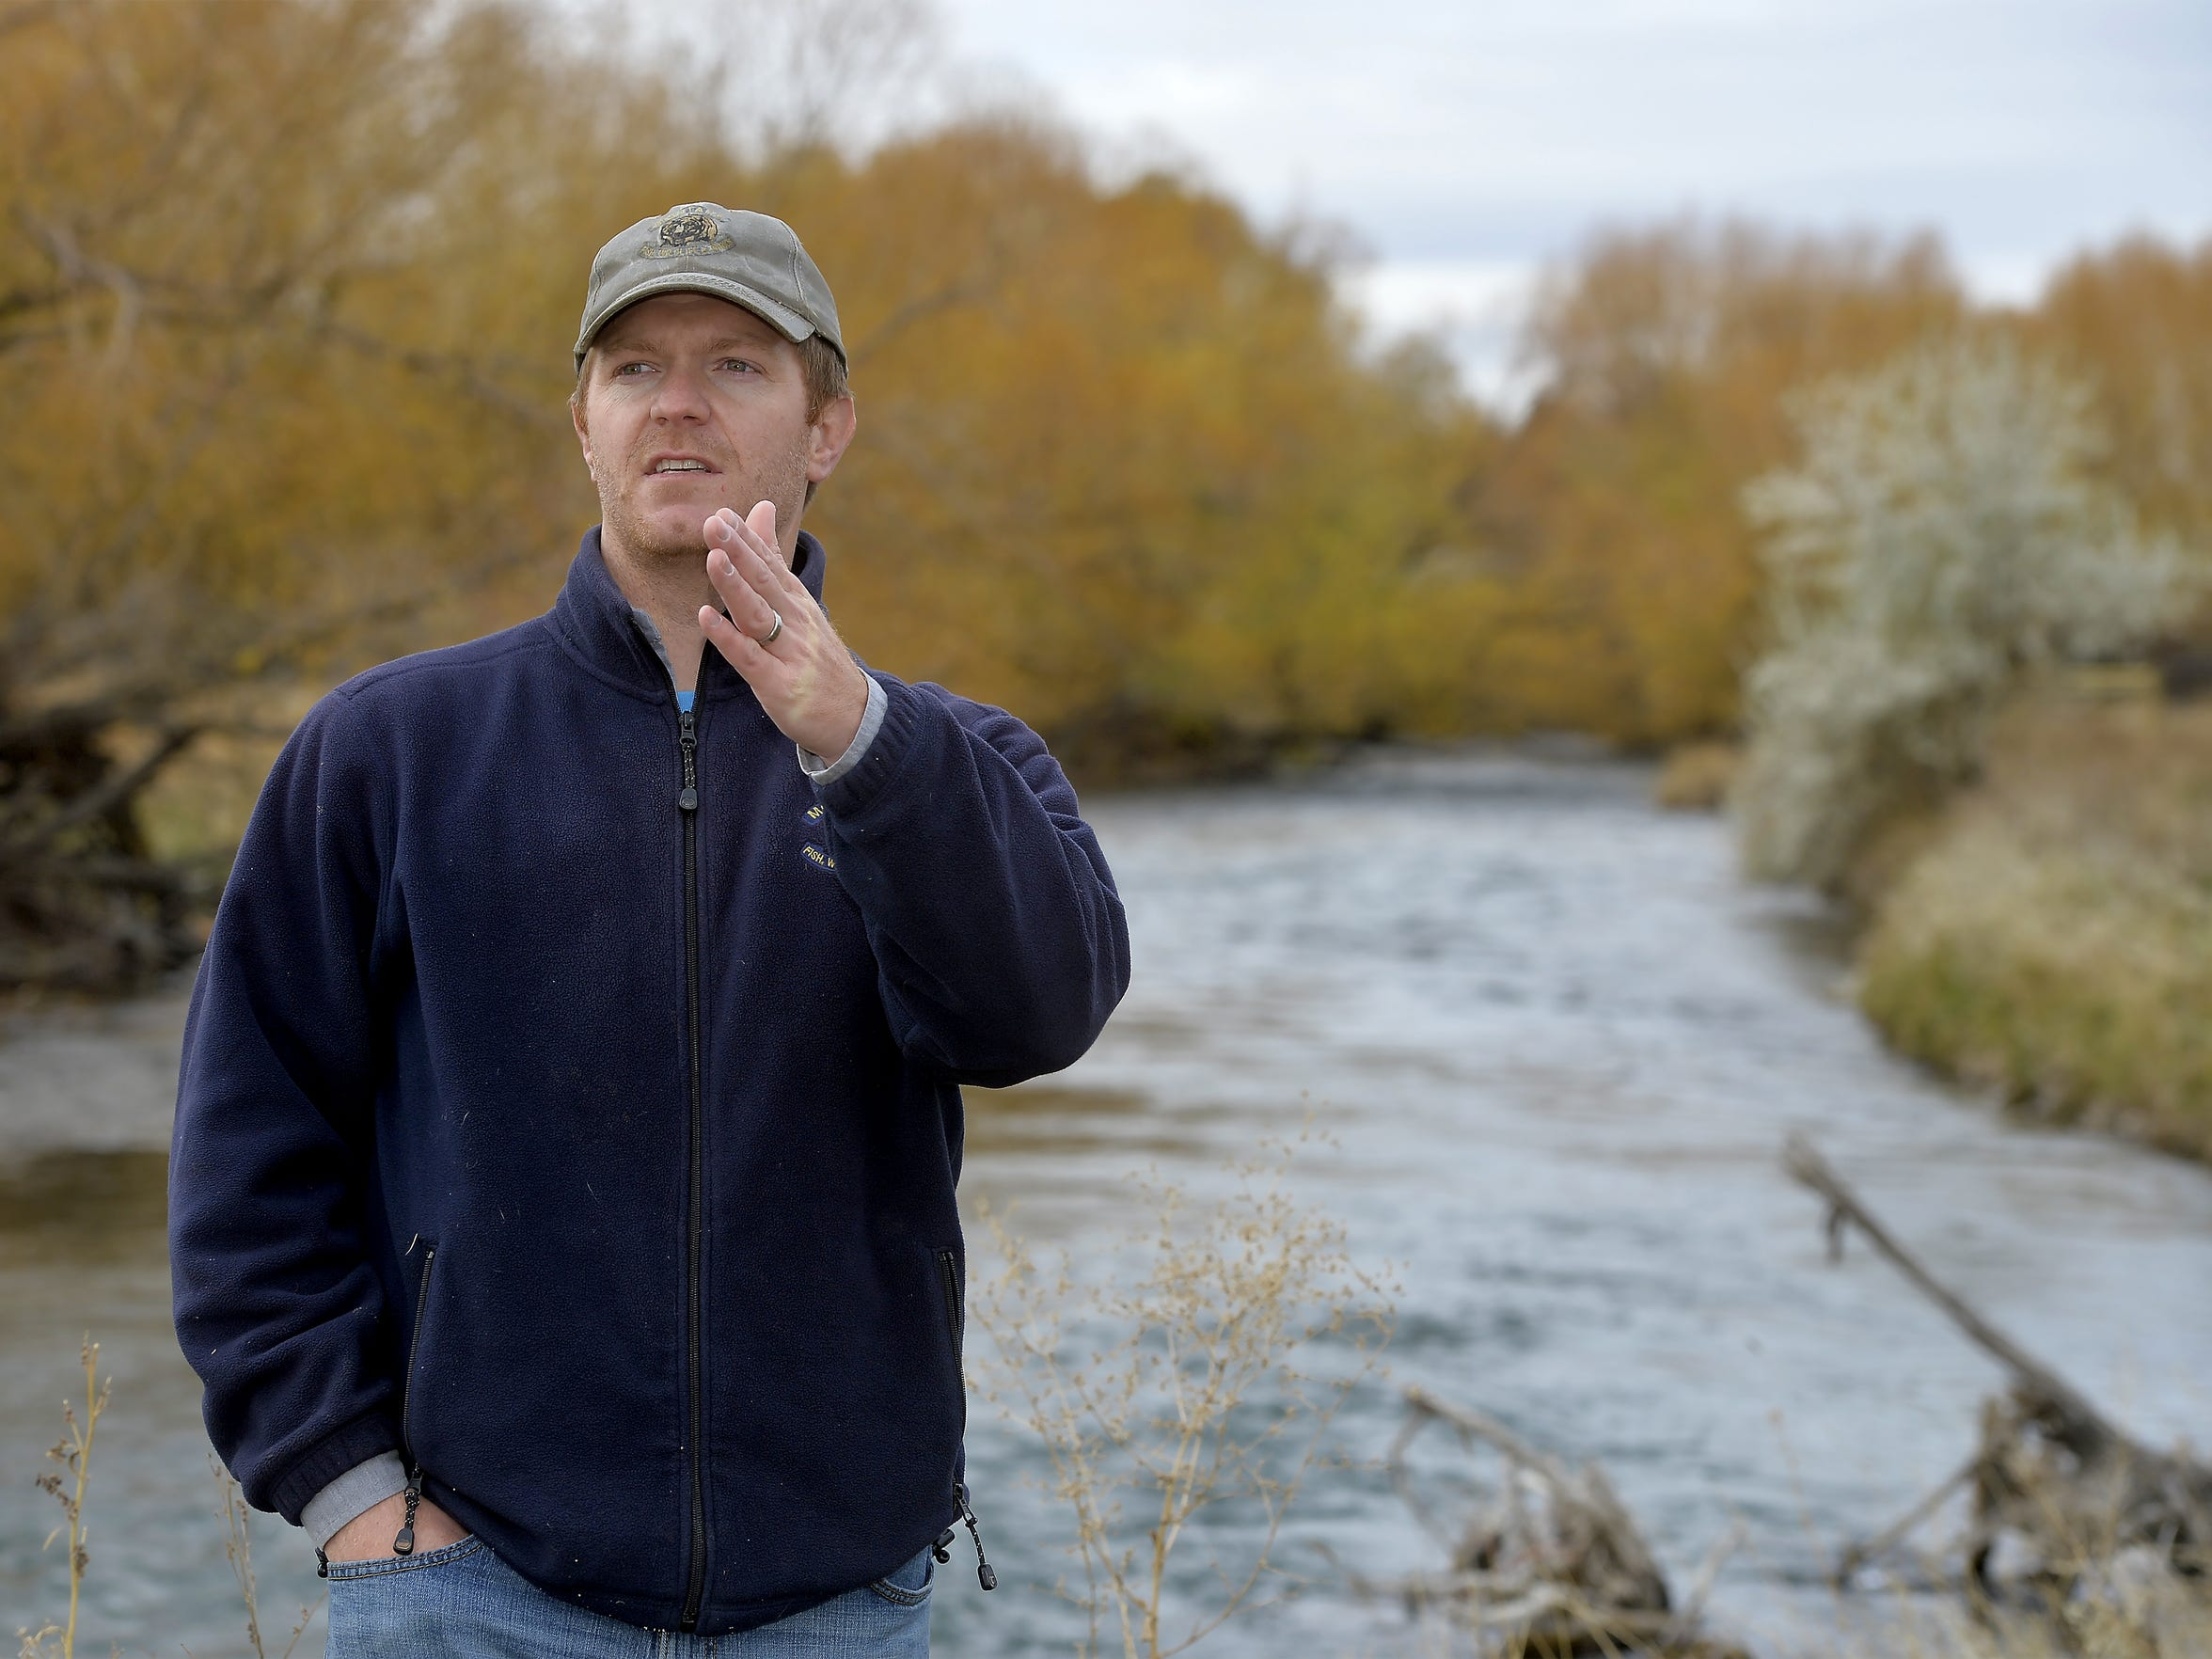 Clint Smith, an FWP fisheries biologist, said Big Spring